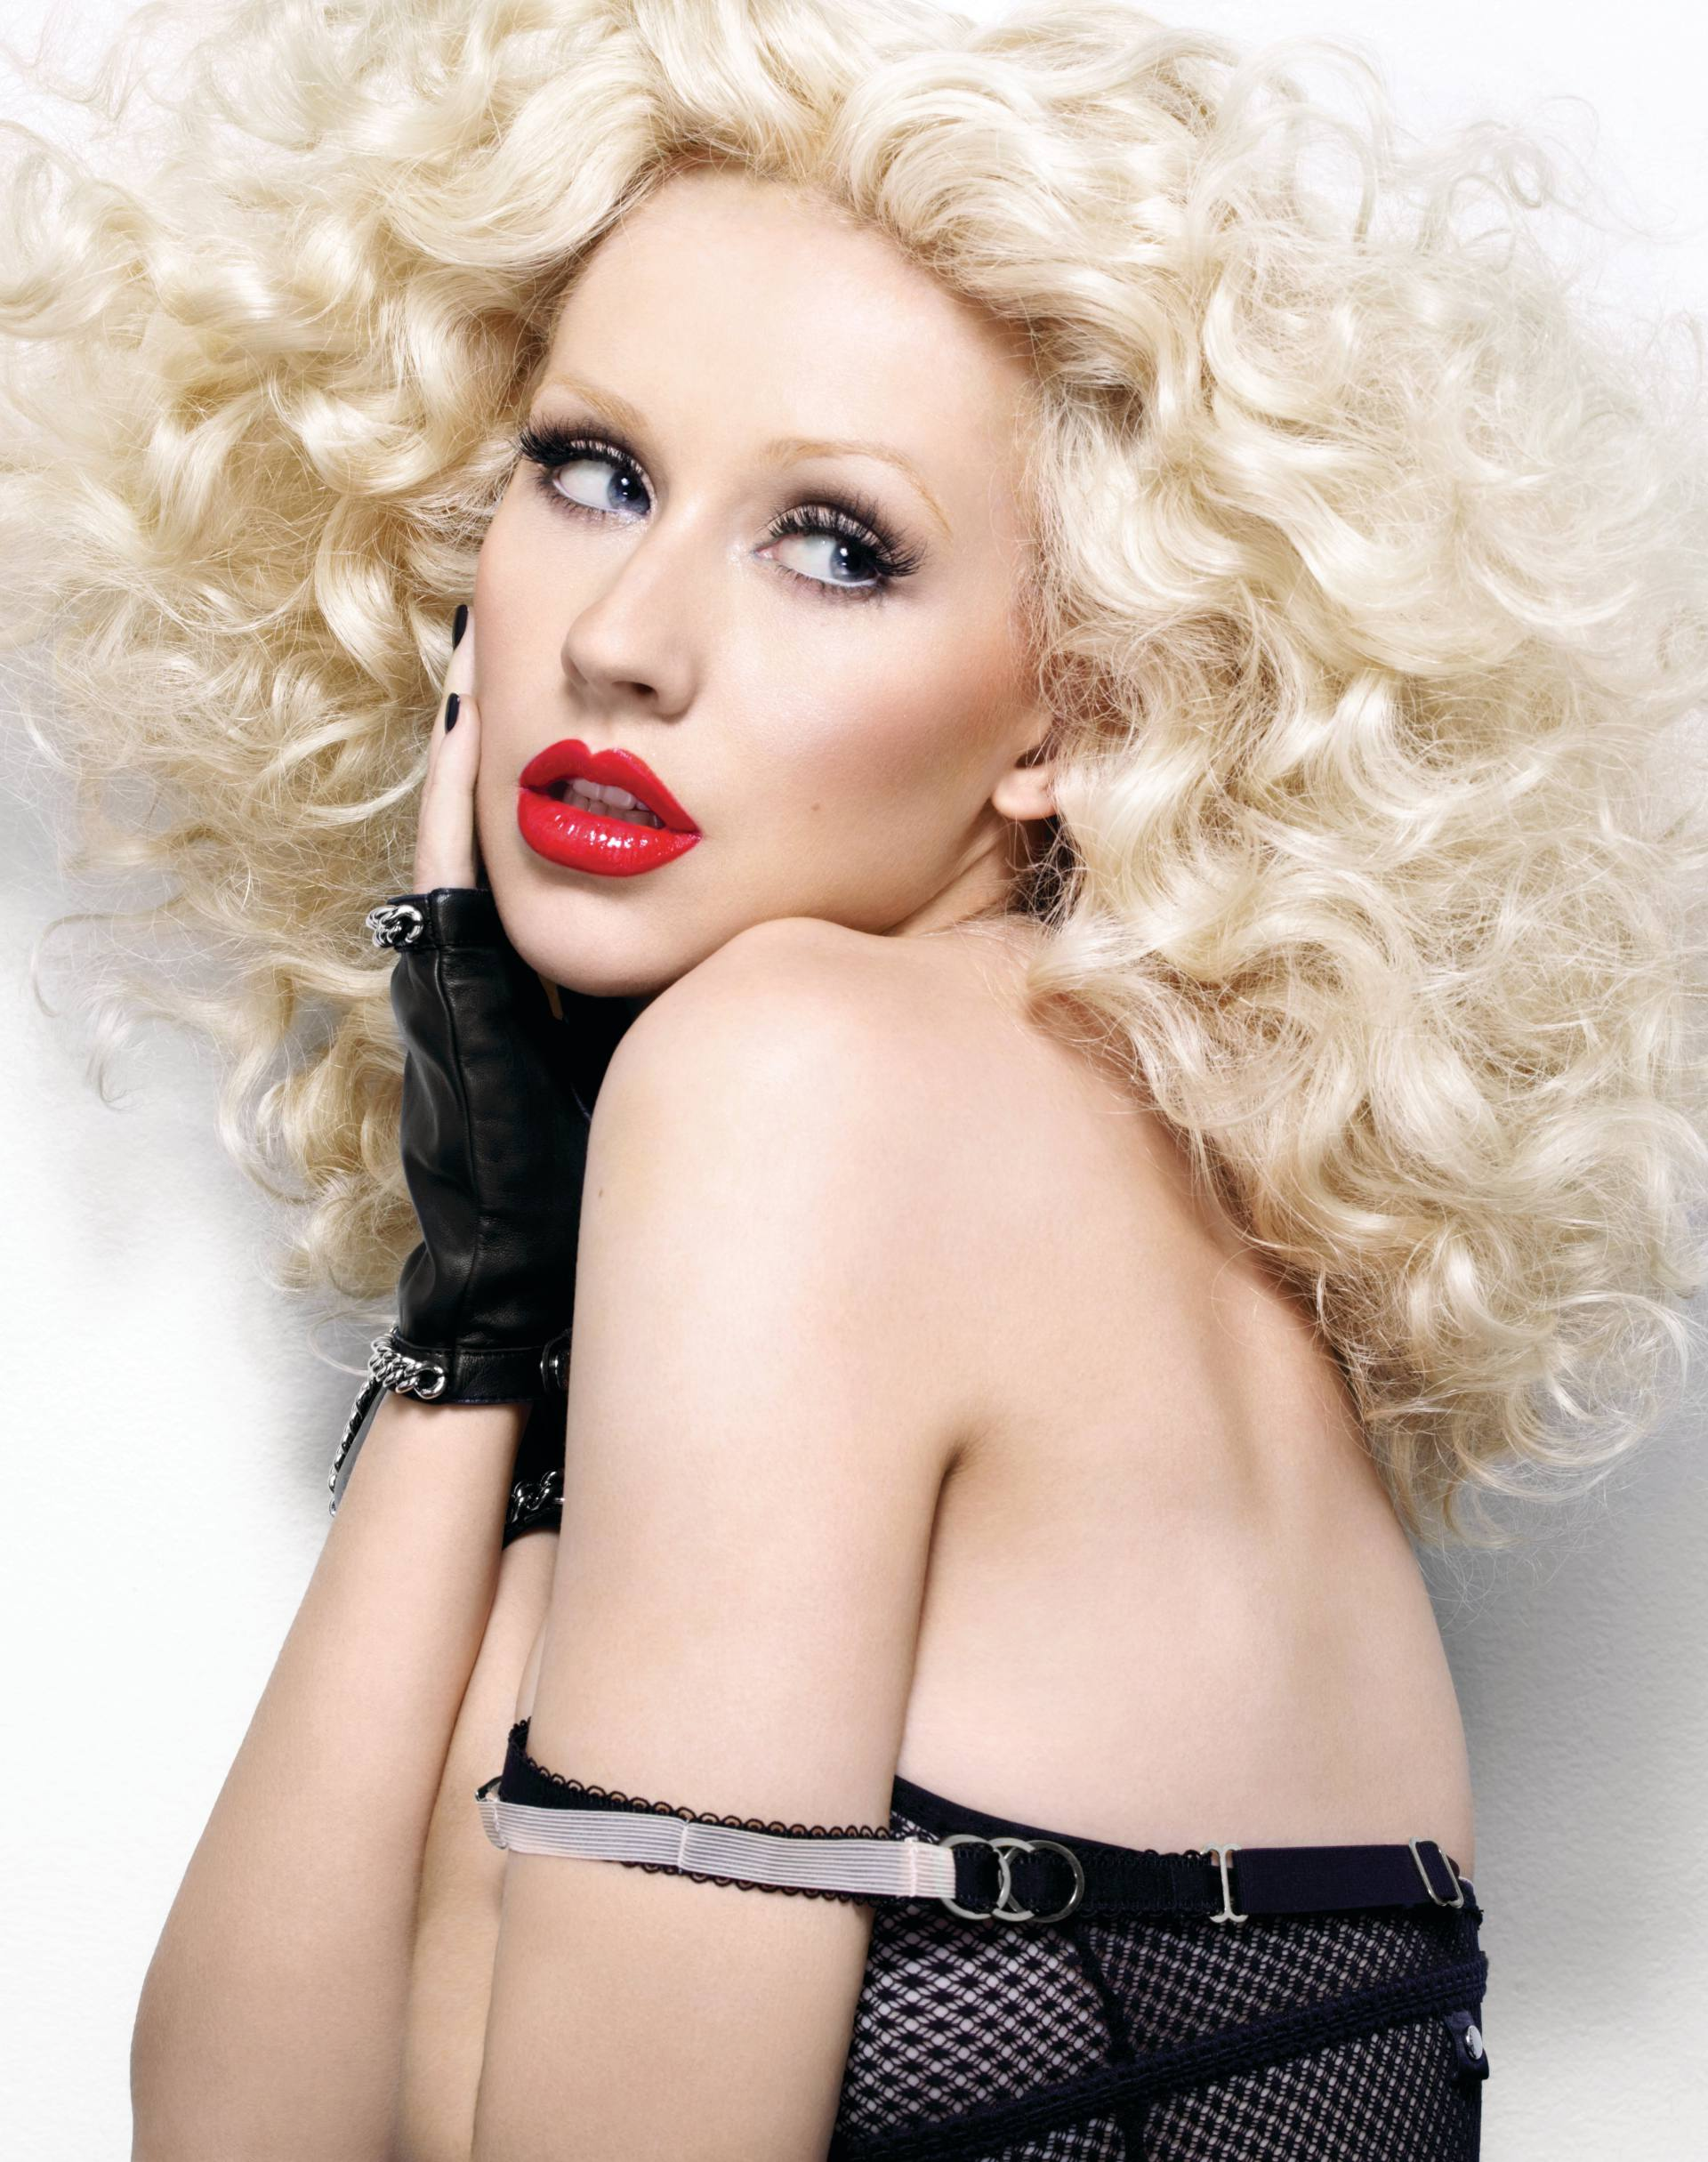 Christina Aguilera – Sexy Boobs In Naked Photoshoot Outtakes From Bionic Album Photoshoot 0016